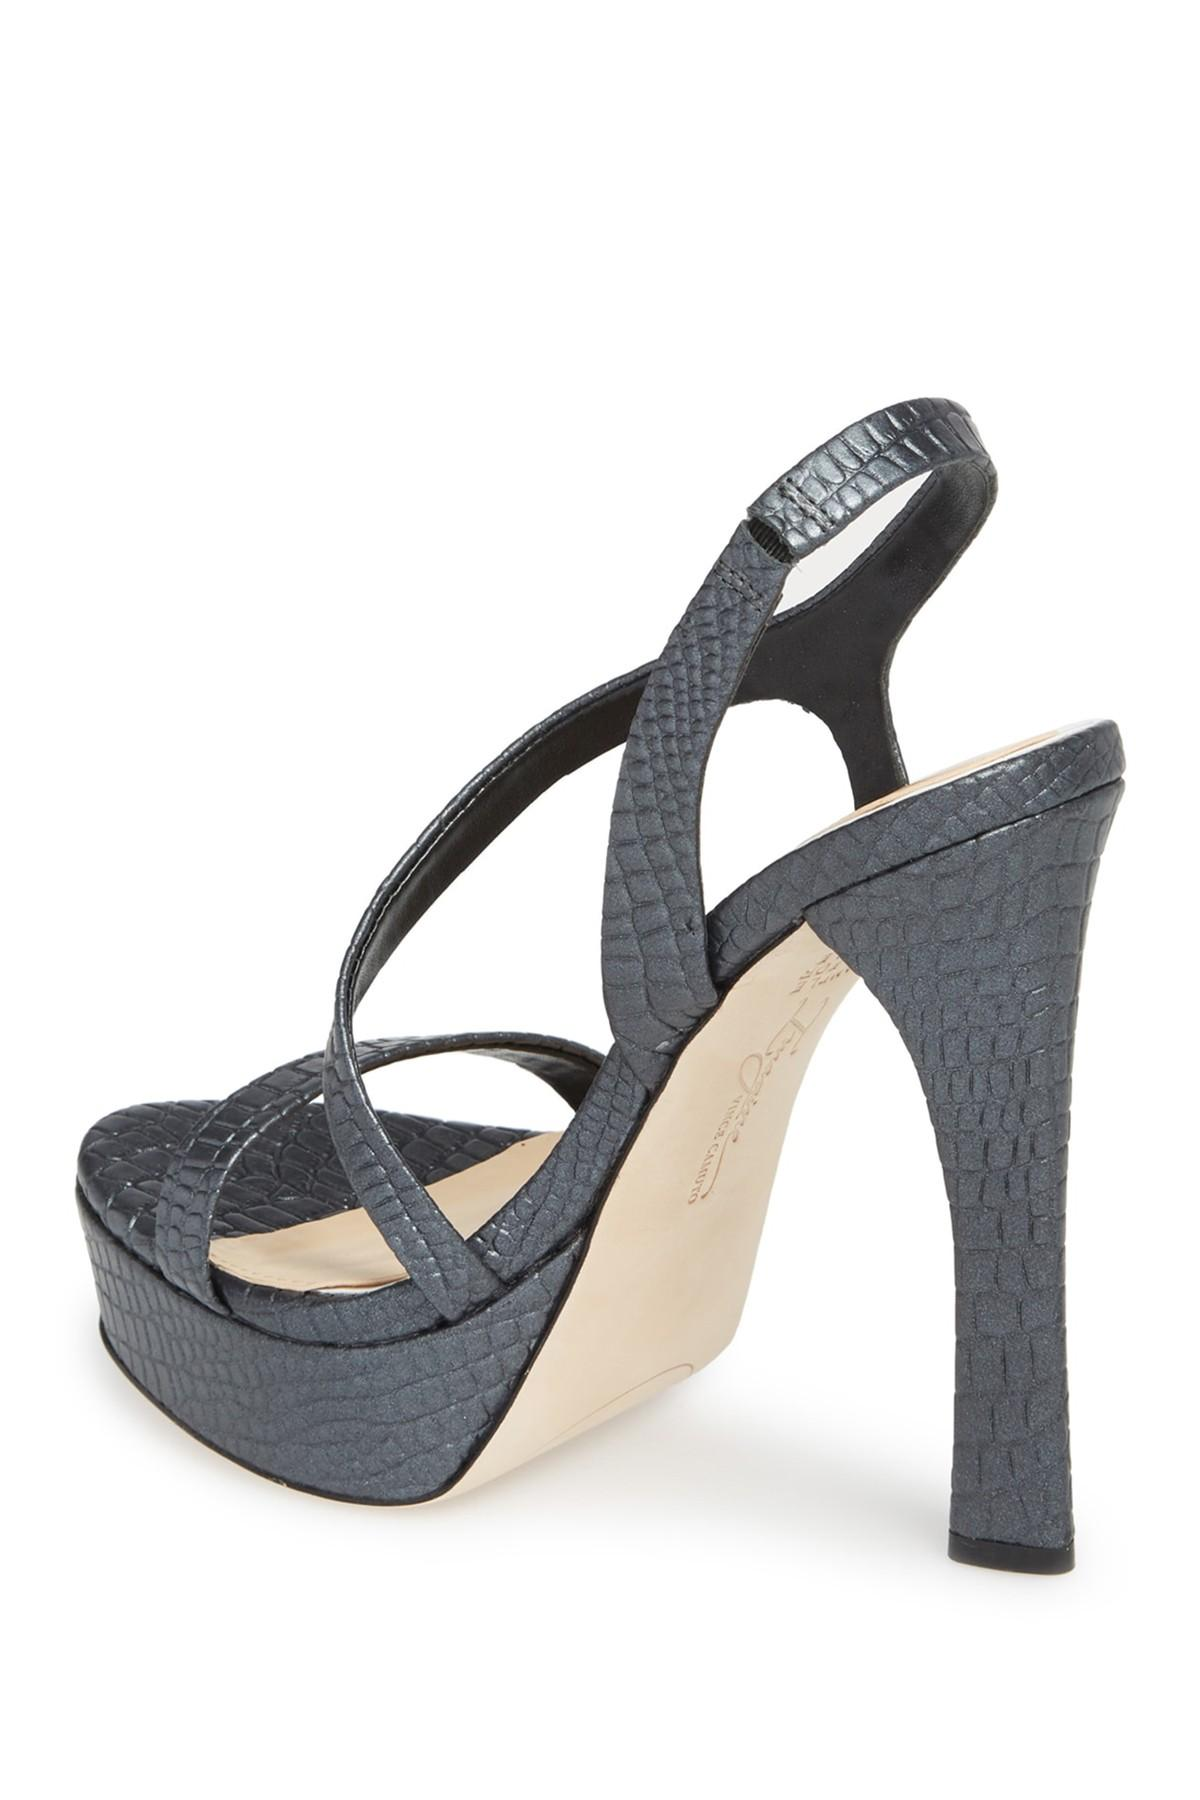 047bc4d1d27c Lyst - Imagine Vince Camuto Prent Platform Sandal in Black - Save 42%